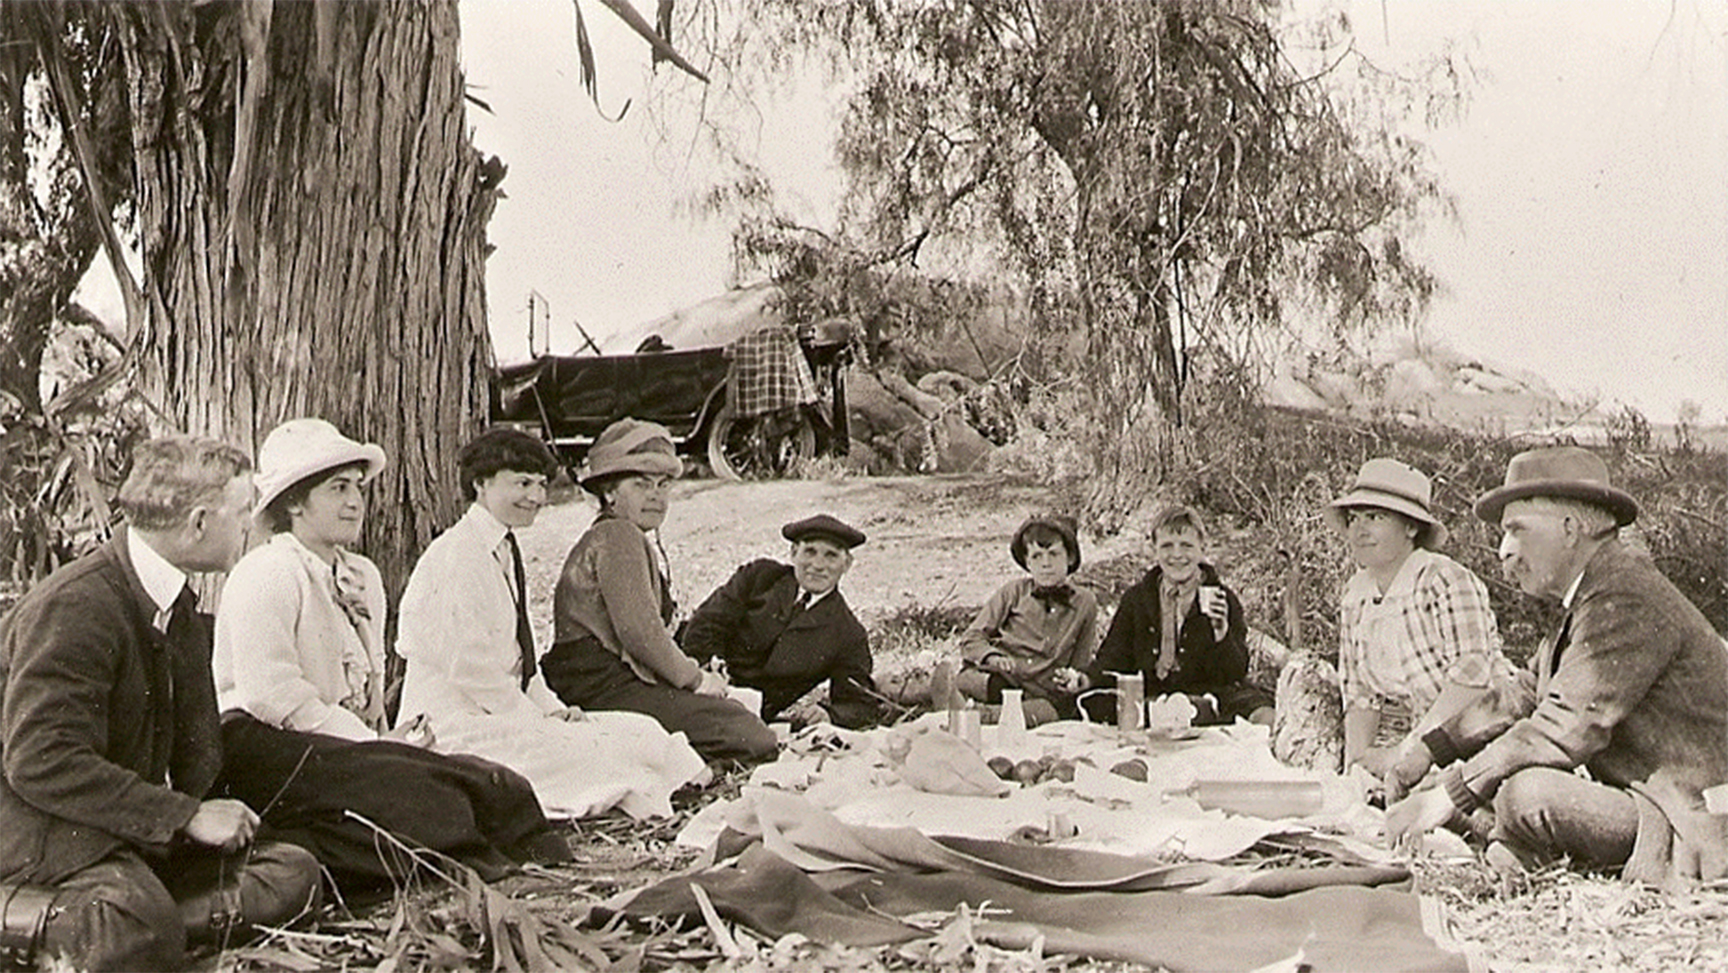 The Congdon family out on picnic. Credit: University of Minnesota-Duluth - Glensheen, The Historic Congdon Estate